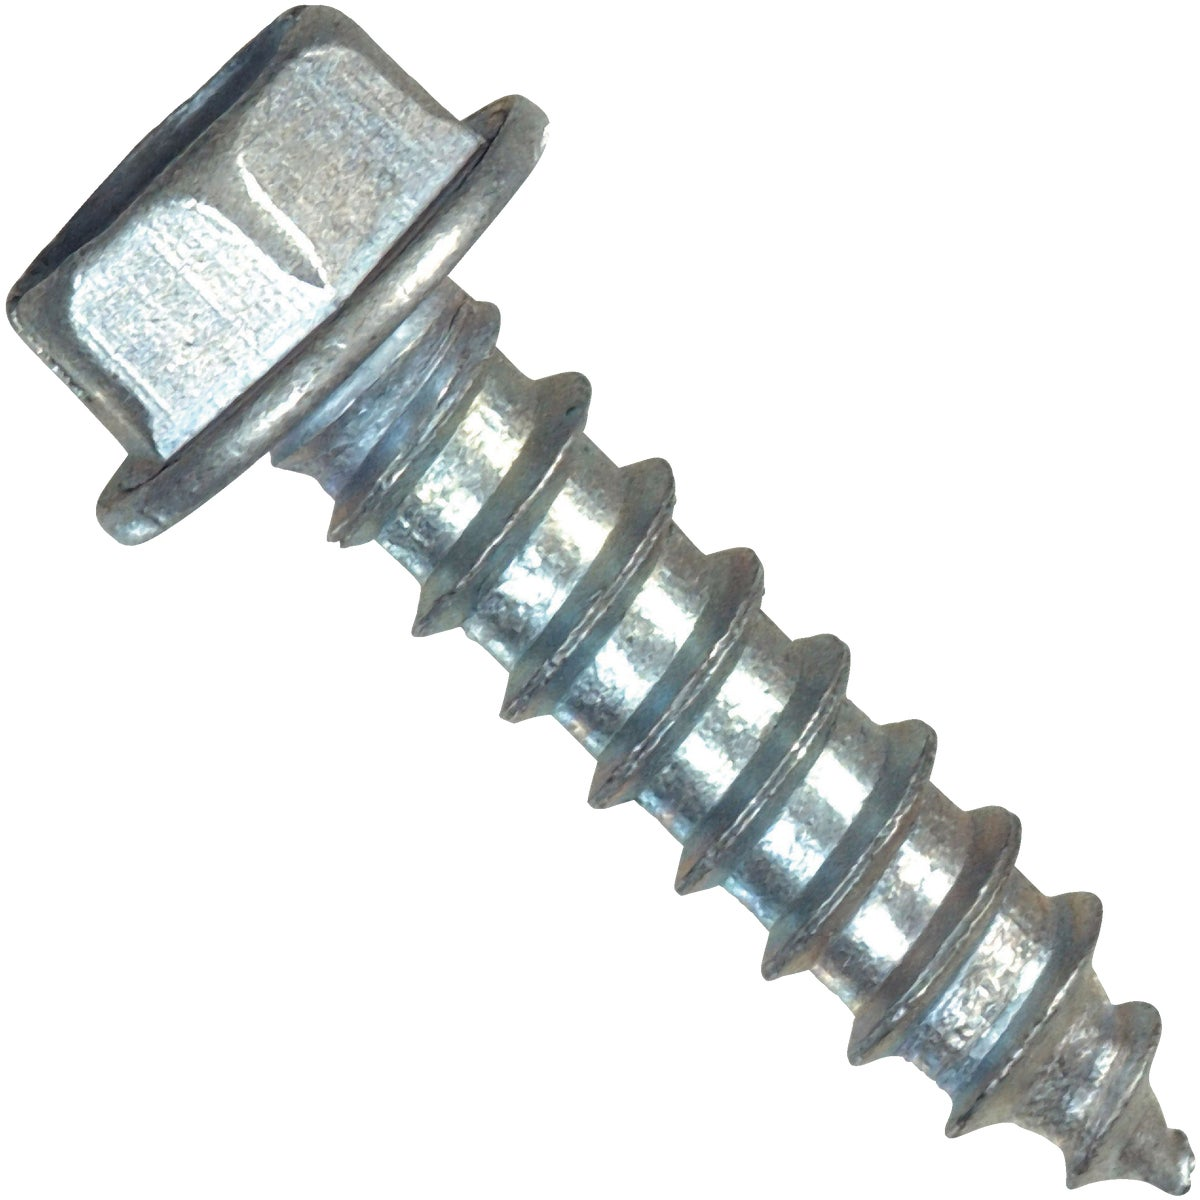 6X5/8 SHT METAL SCREW